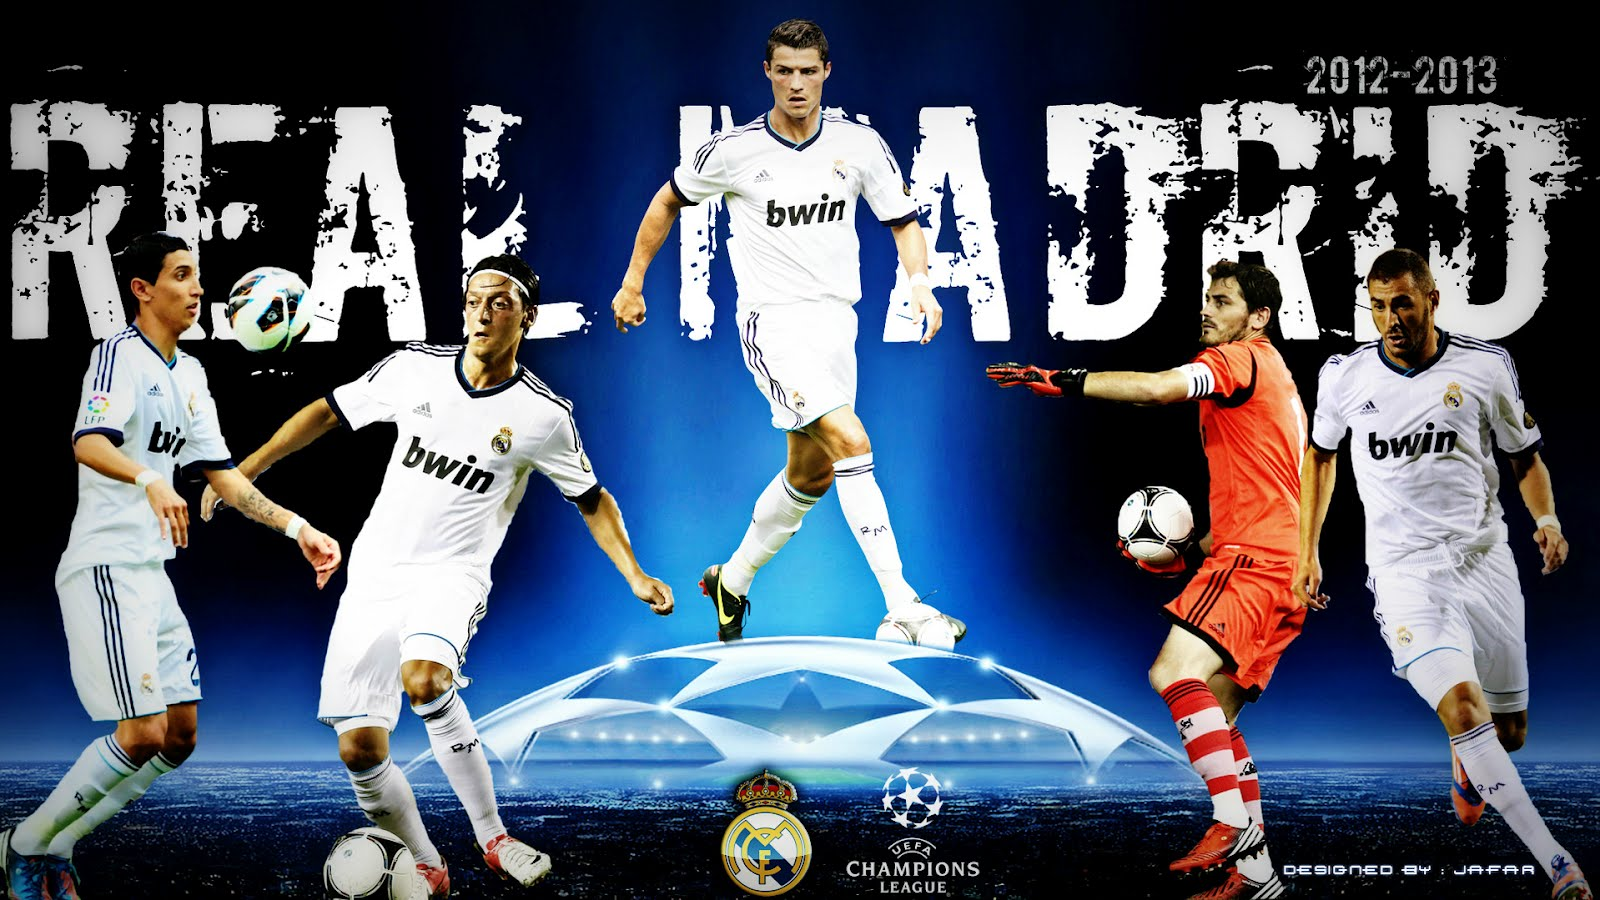 Football: Real Madrid Soccer HD Wallpapers 2012-2013